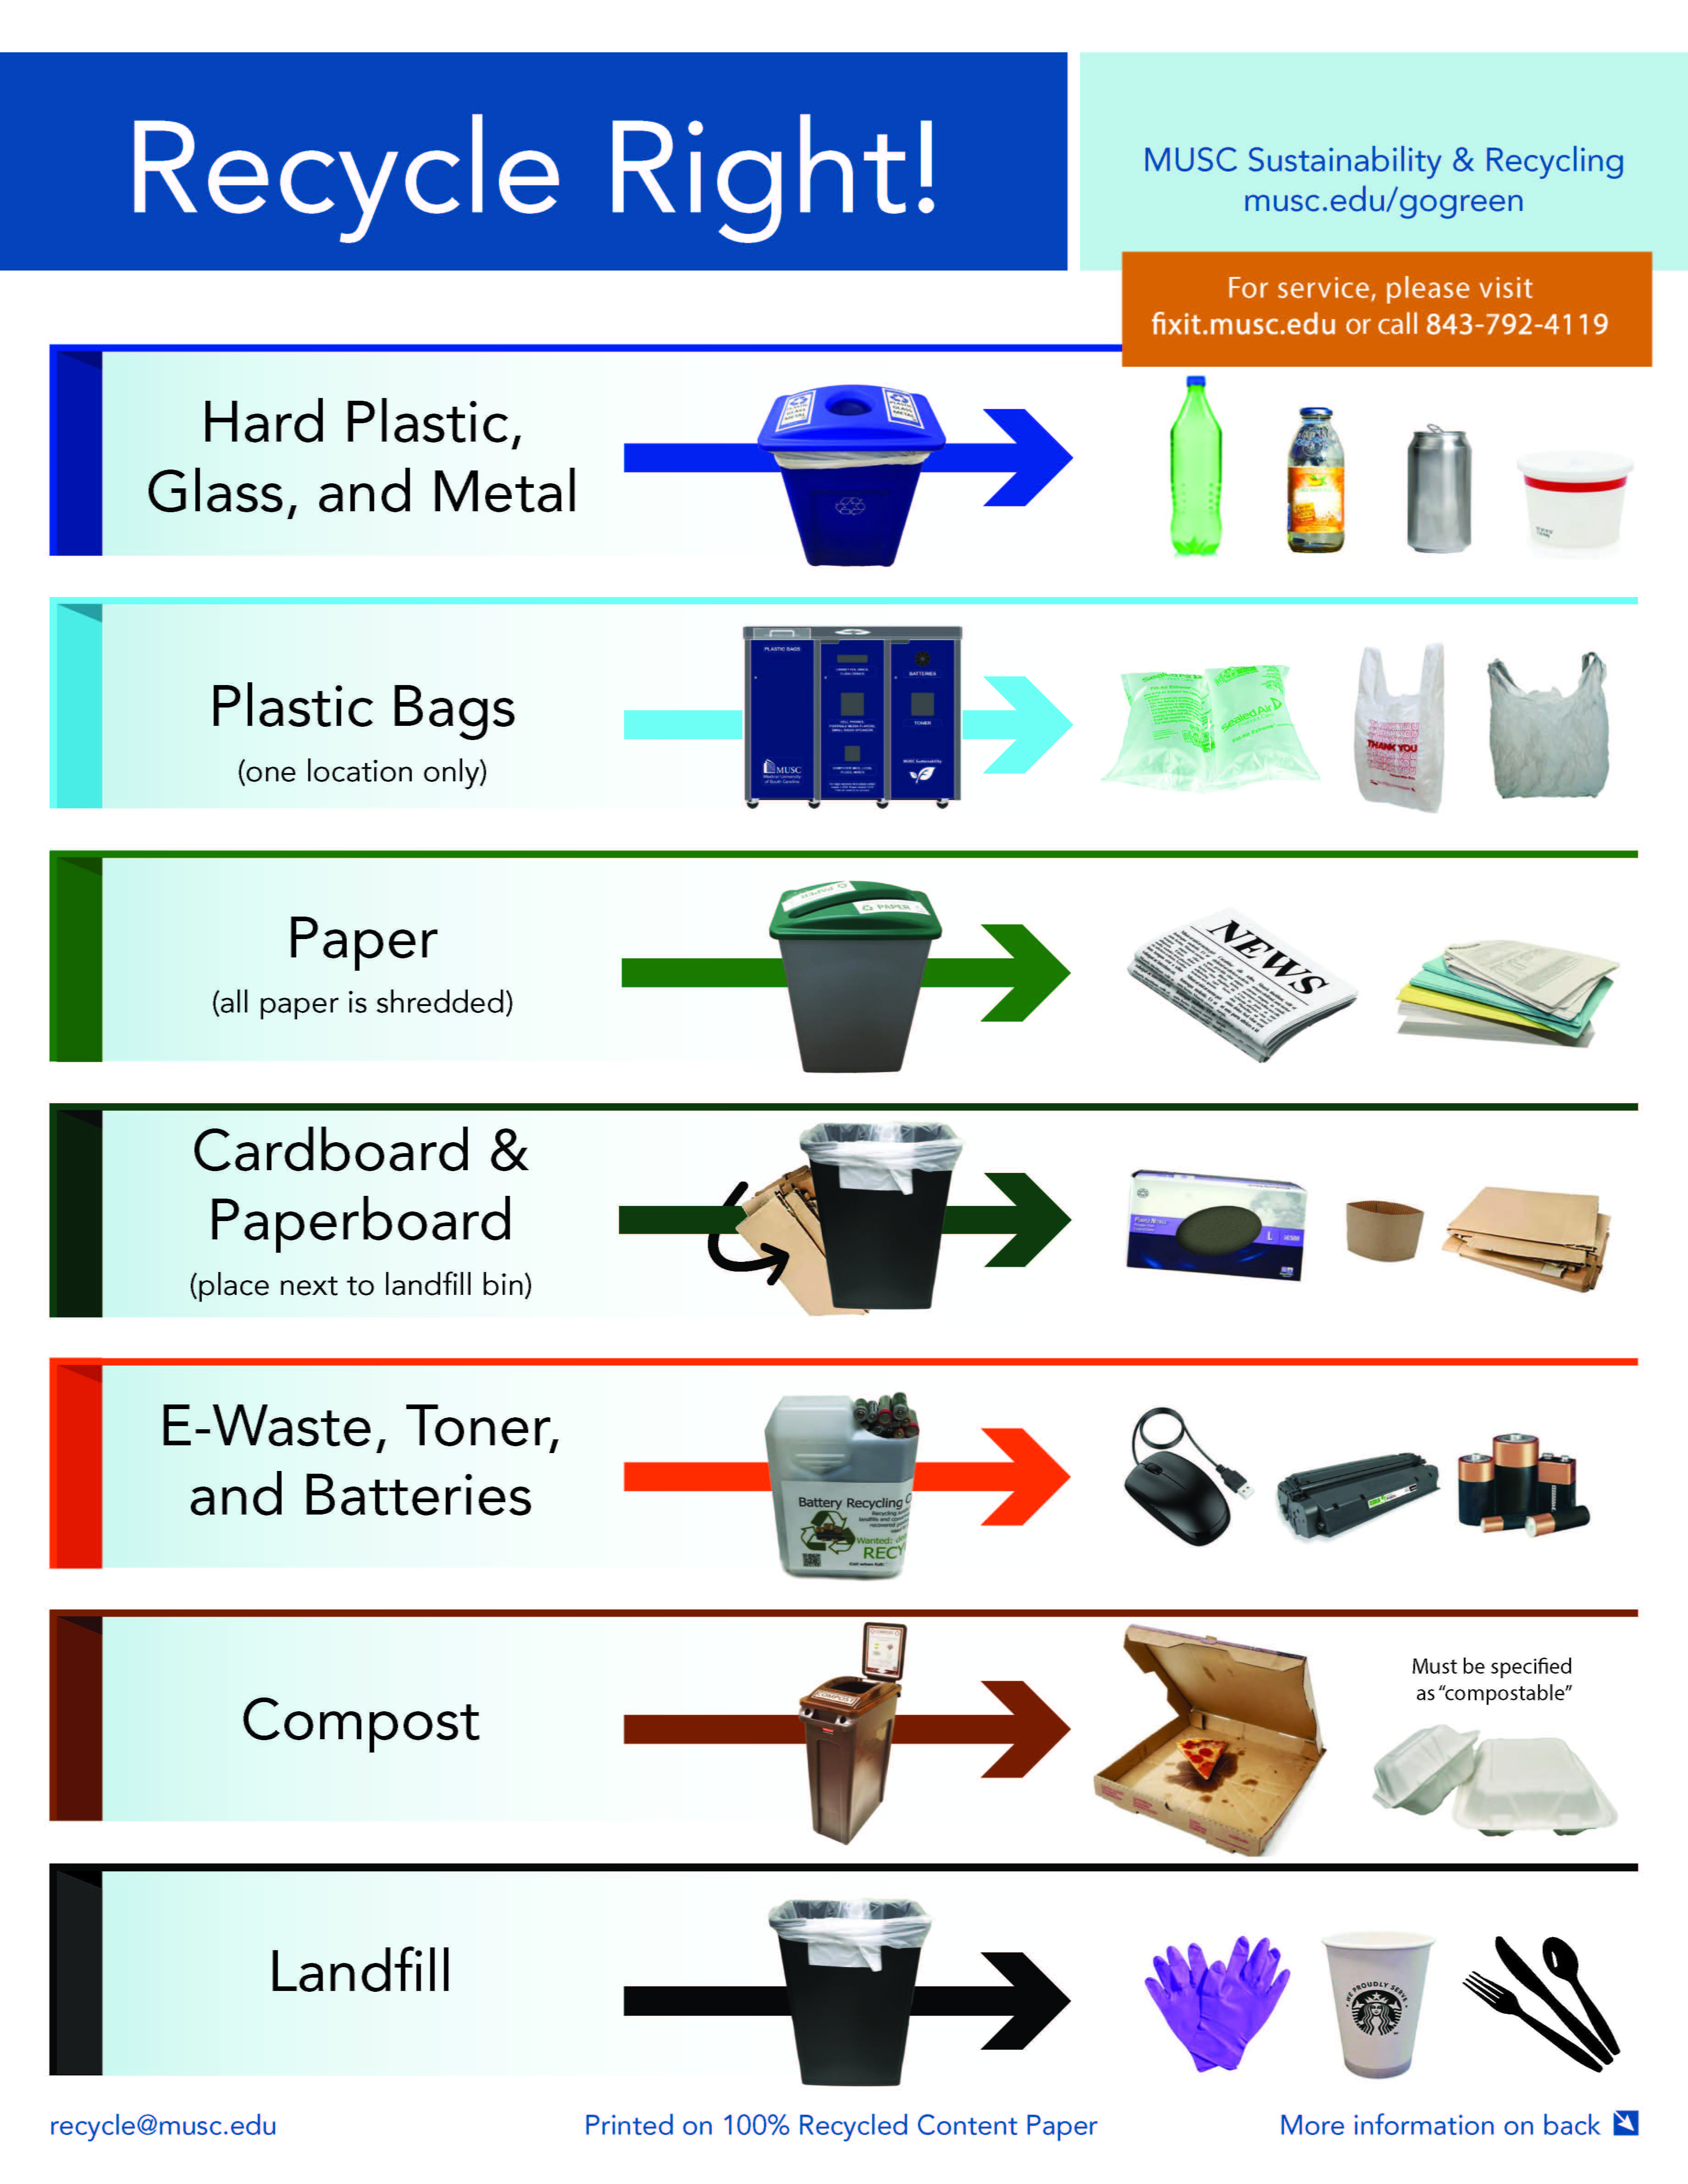 MUSC Recycling Guide Side One - infographic transcript below